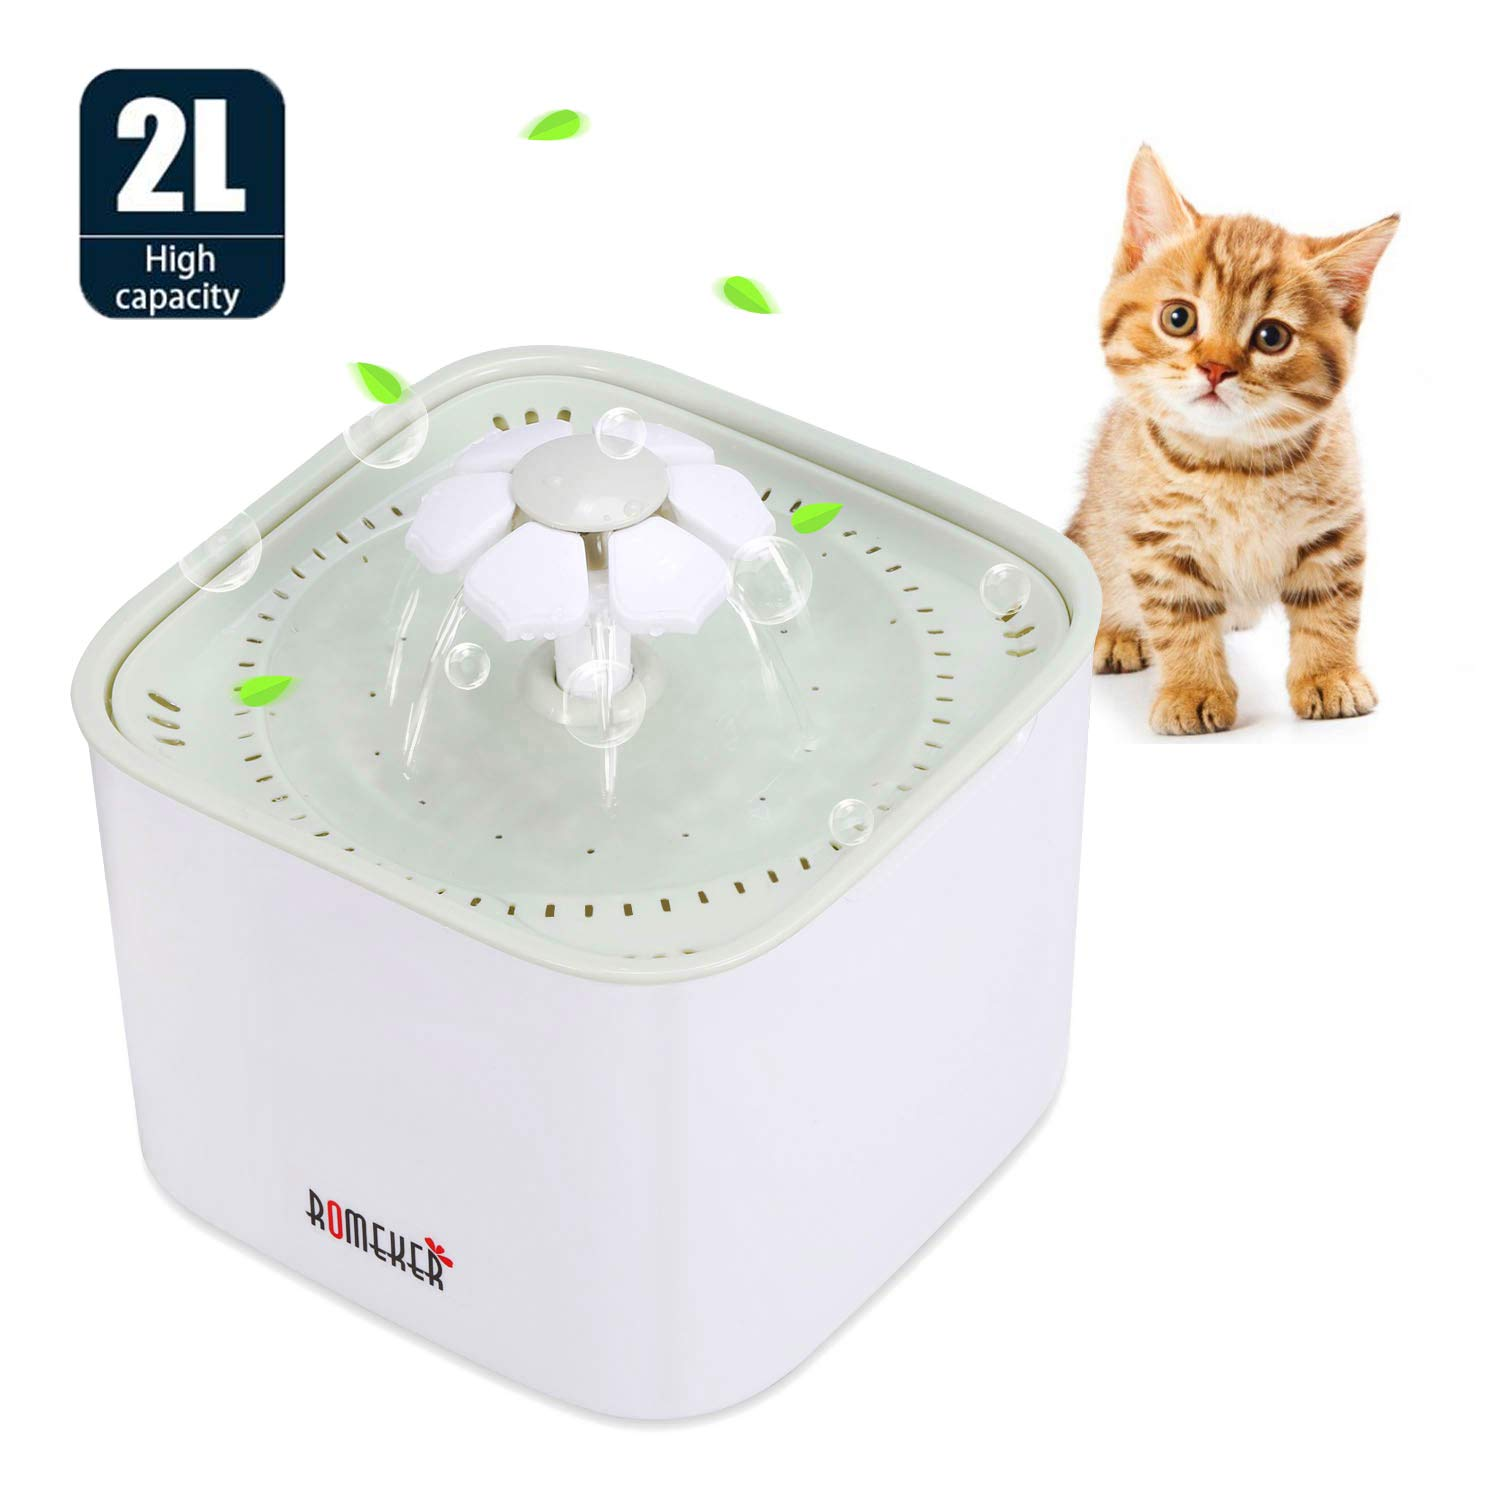 ROMEKER Pet Fountain Cat Water Dispenser 2L Automatic Pet Water Fountain Healthy and Hygienic Drinking Fountain for Cats and Dogs Birds and Small Animals